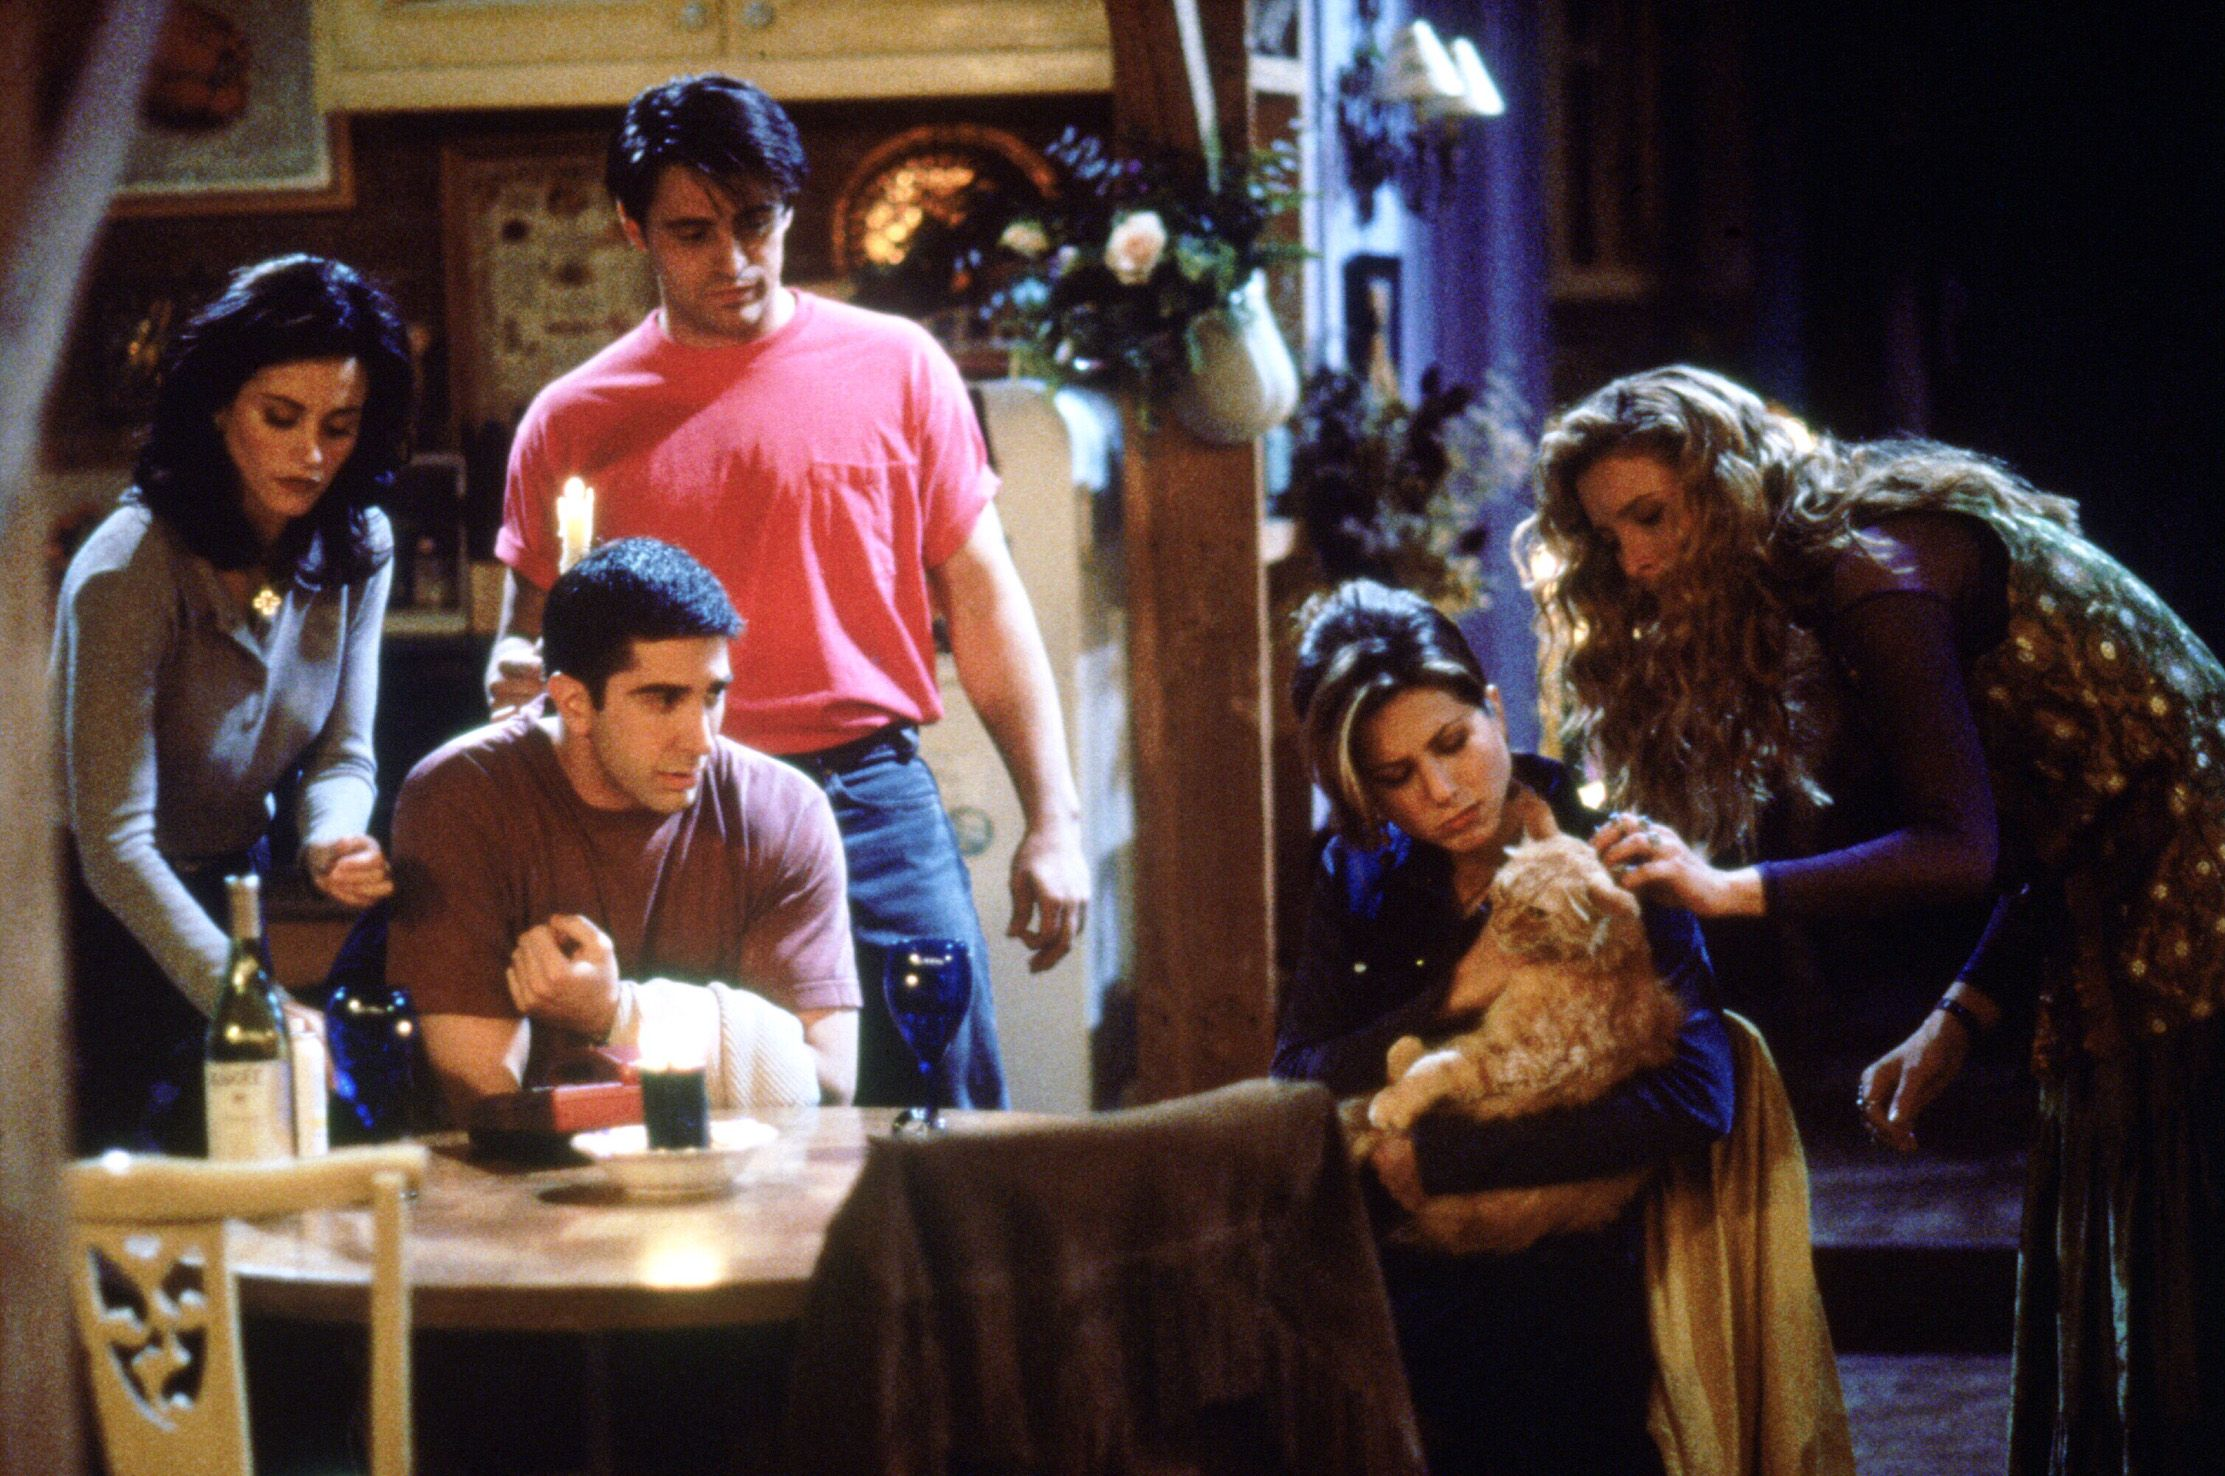 Friends ~ Episode Pics ~ Season 1, Episode 7 ~ The One With